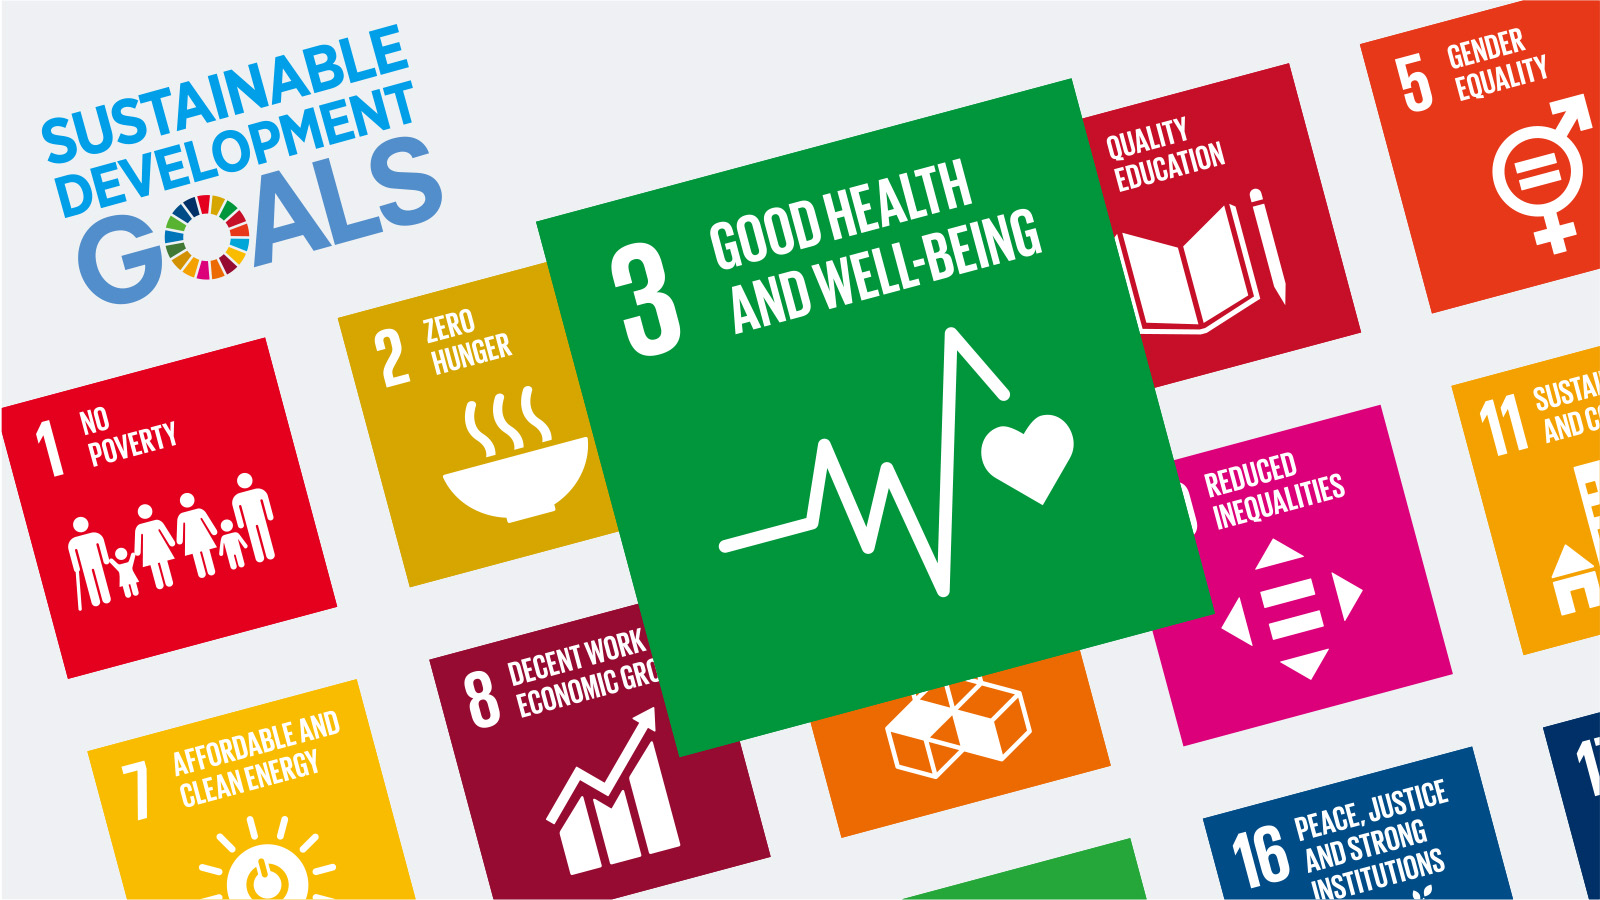 Partnership-driven Approach to SDGs